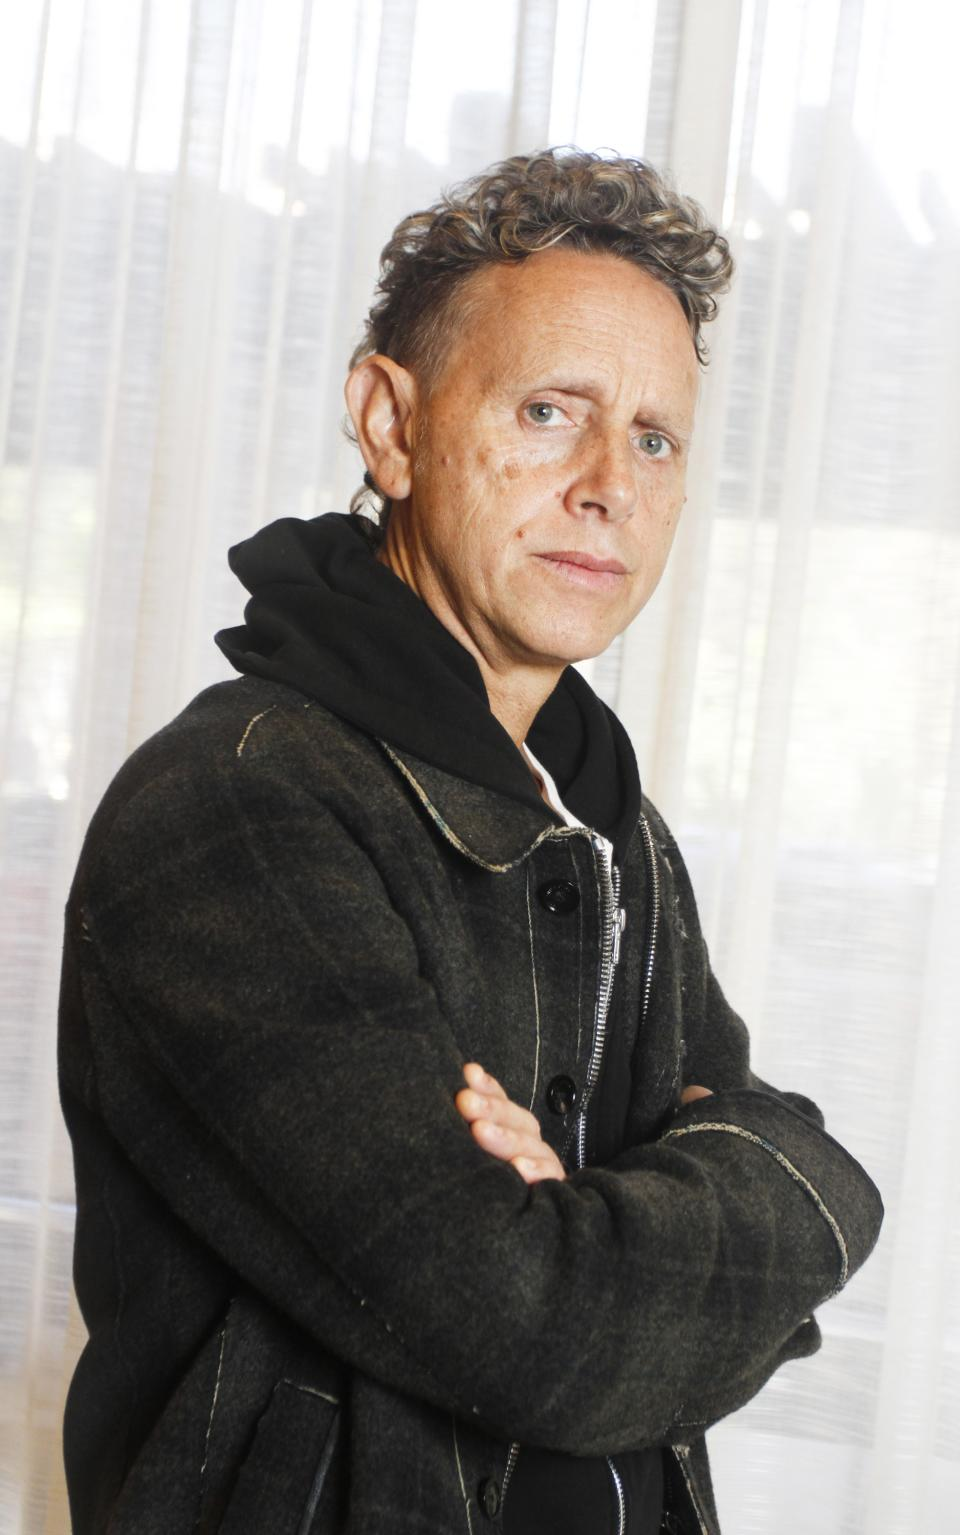 "In this March 13, 2013 photo, Martin Gore, of Depeche Mode, poses for a photograph during the SXSW Music Festival, in Austin, Texas. Depeche Mode's dark, electronic grooves are all over ""Delta Machine,"" the trio's 13th release, out this week. (Photo by Jack Plunkett/Invision/AP)"